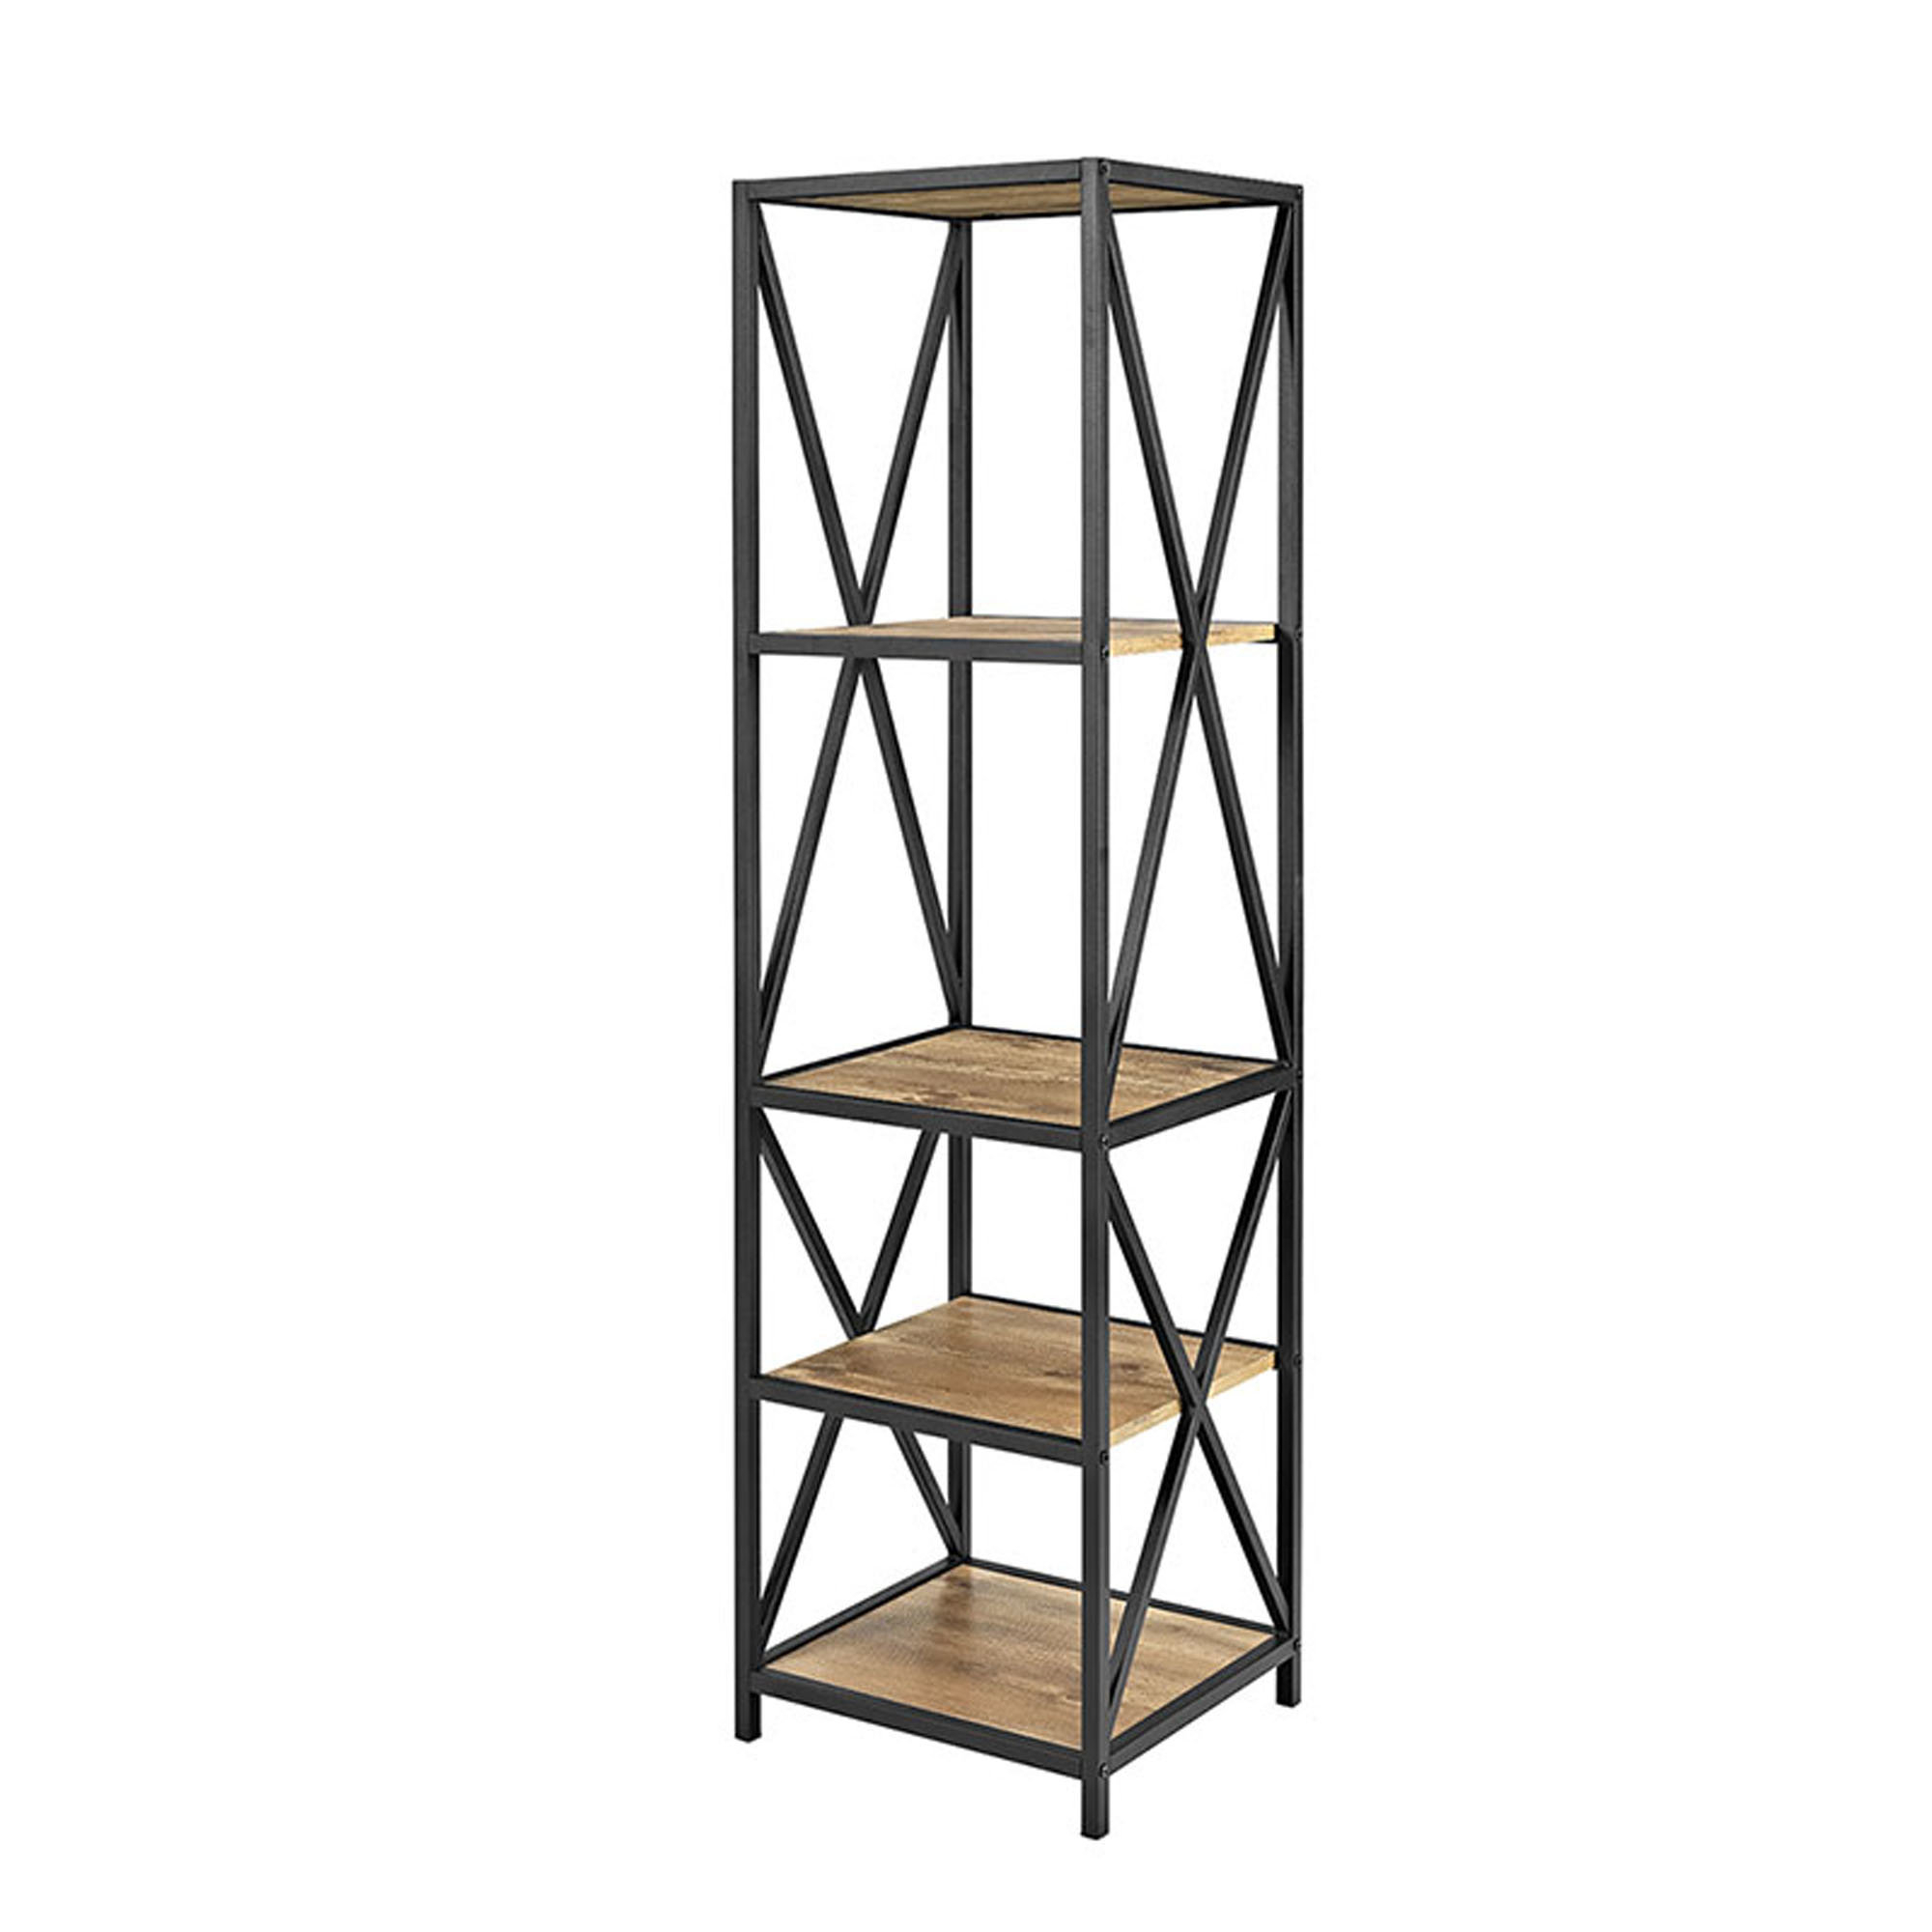 Macon Etagere Bookcases With Widely Used Augustus Etagere Bookcase (View 17 of 20)